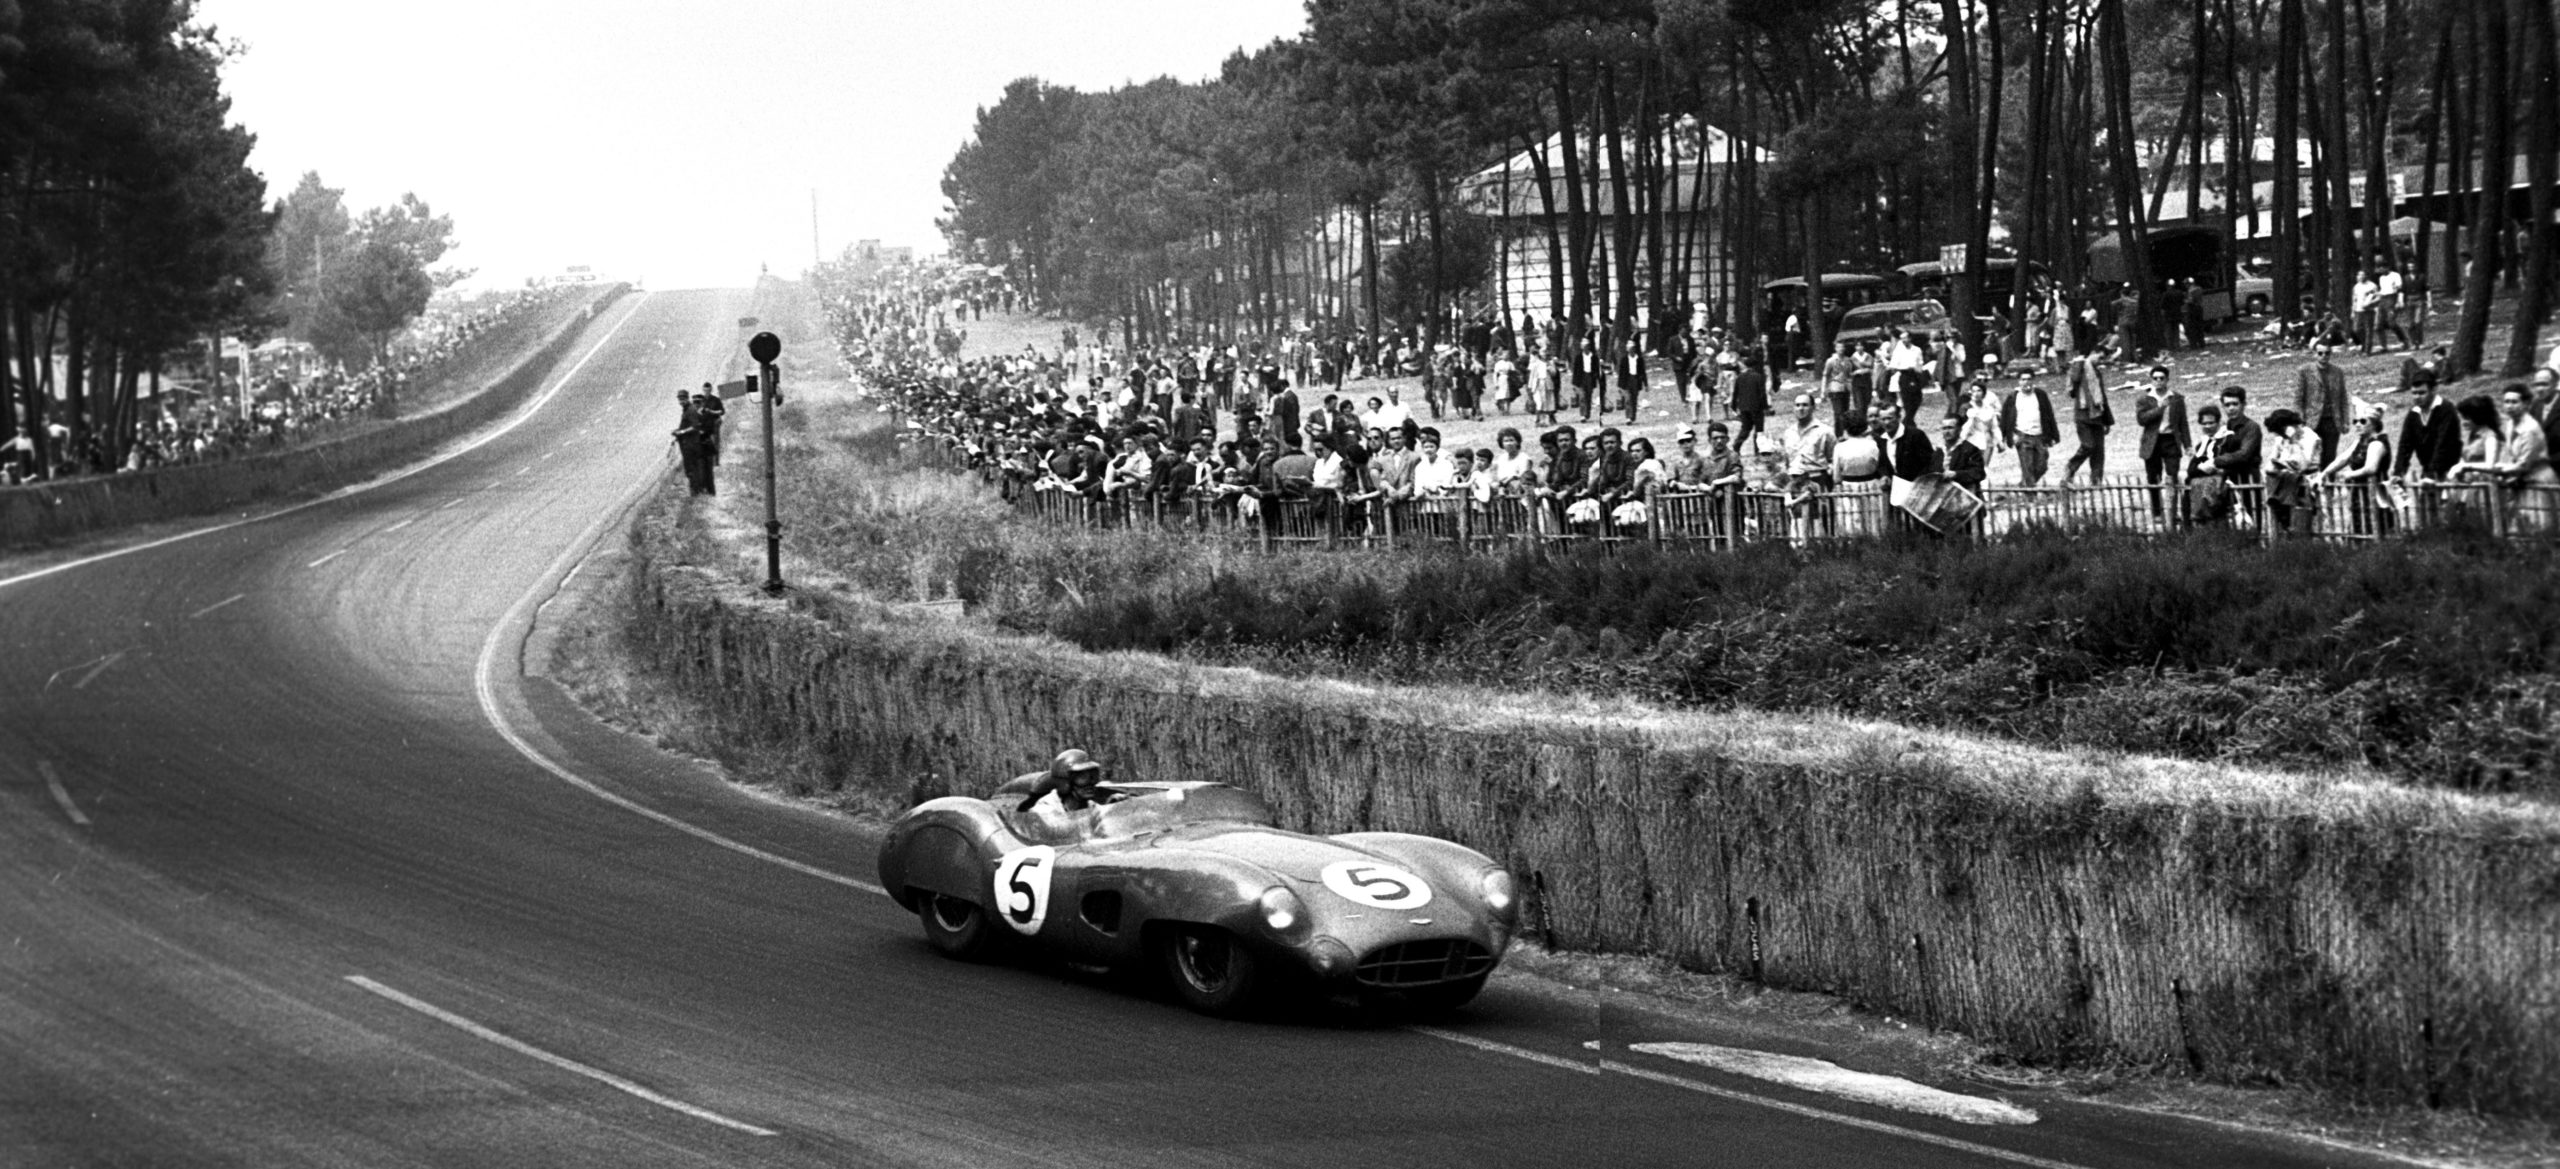 Carroll Shelby and Aston MArtin DBR1 at Le Mans in 1959